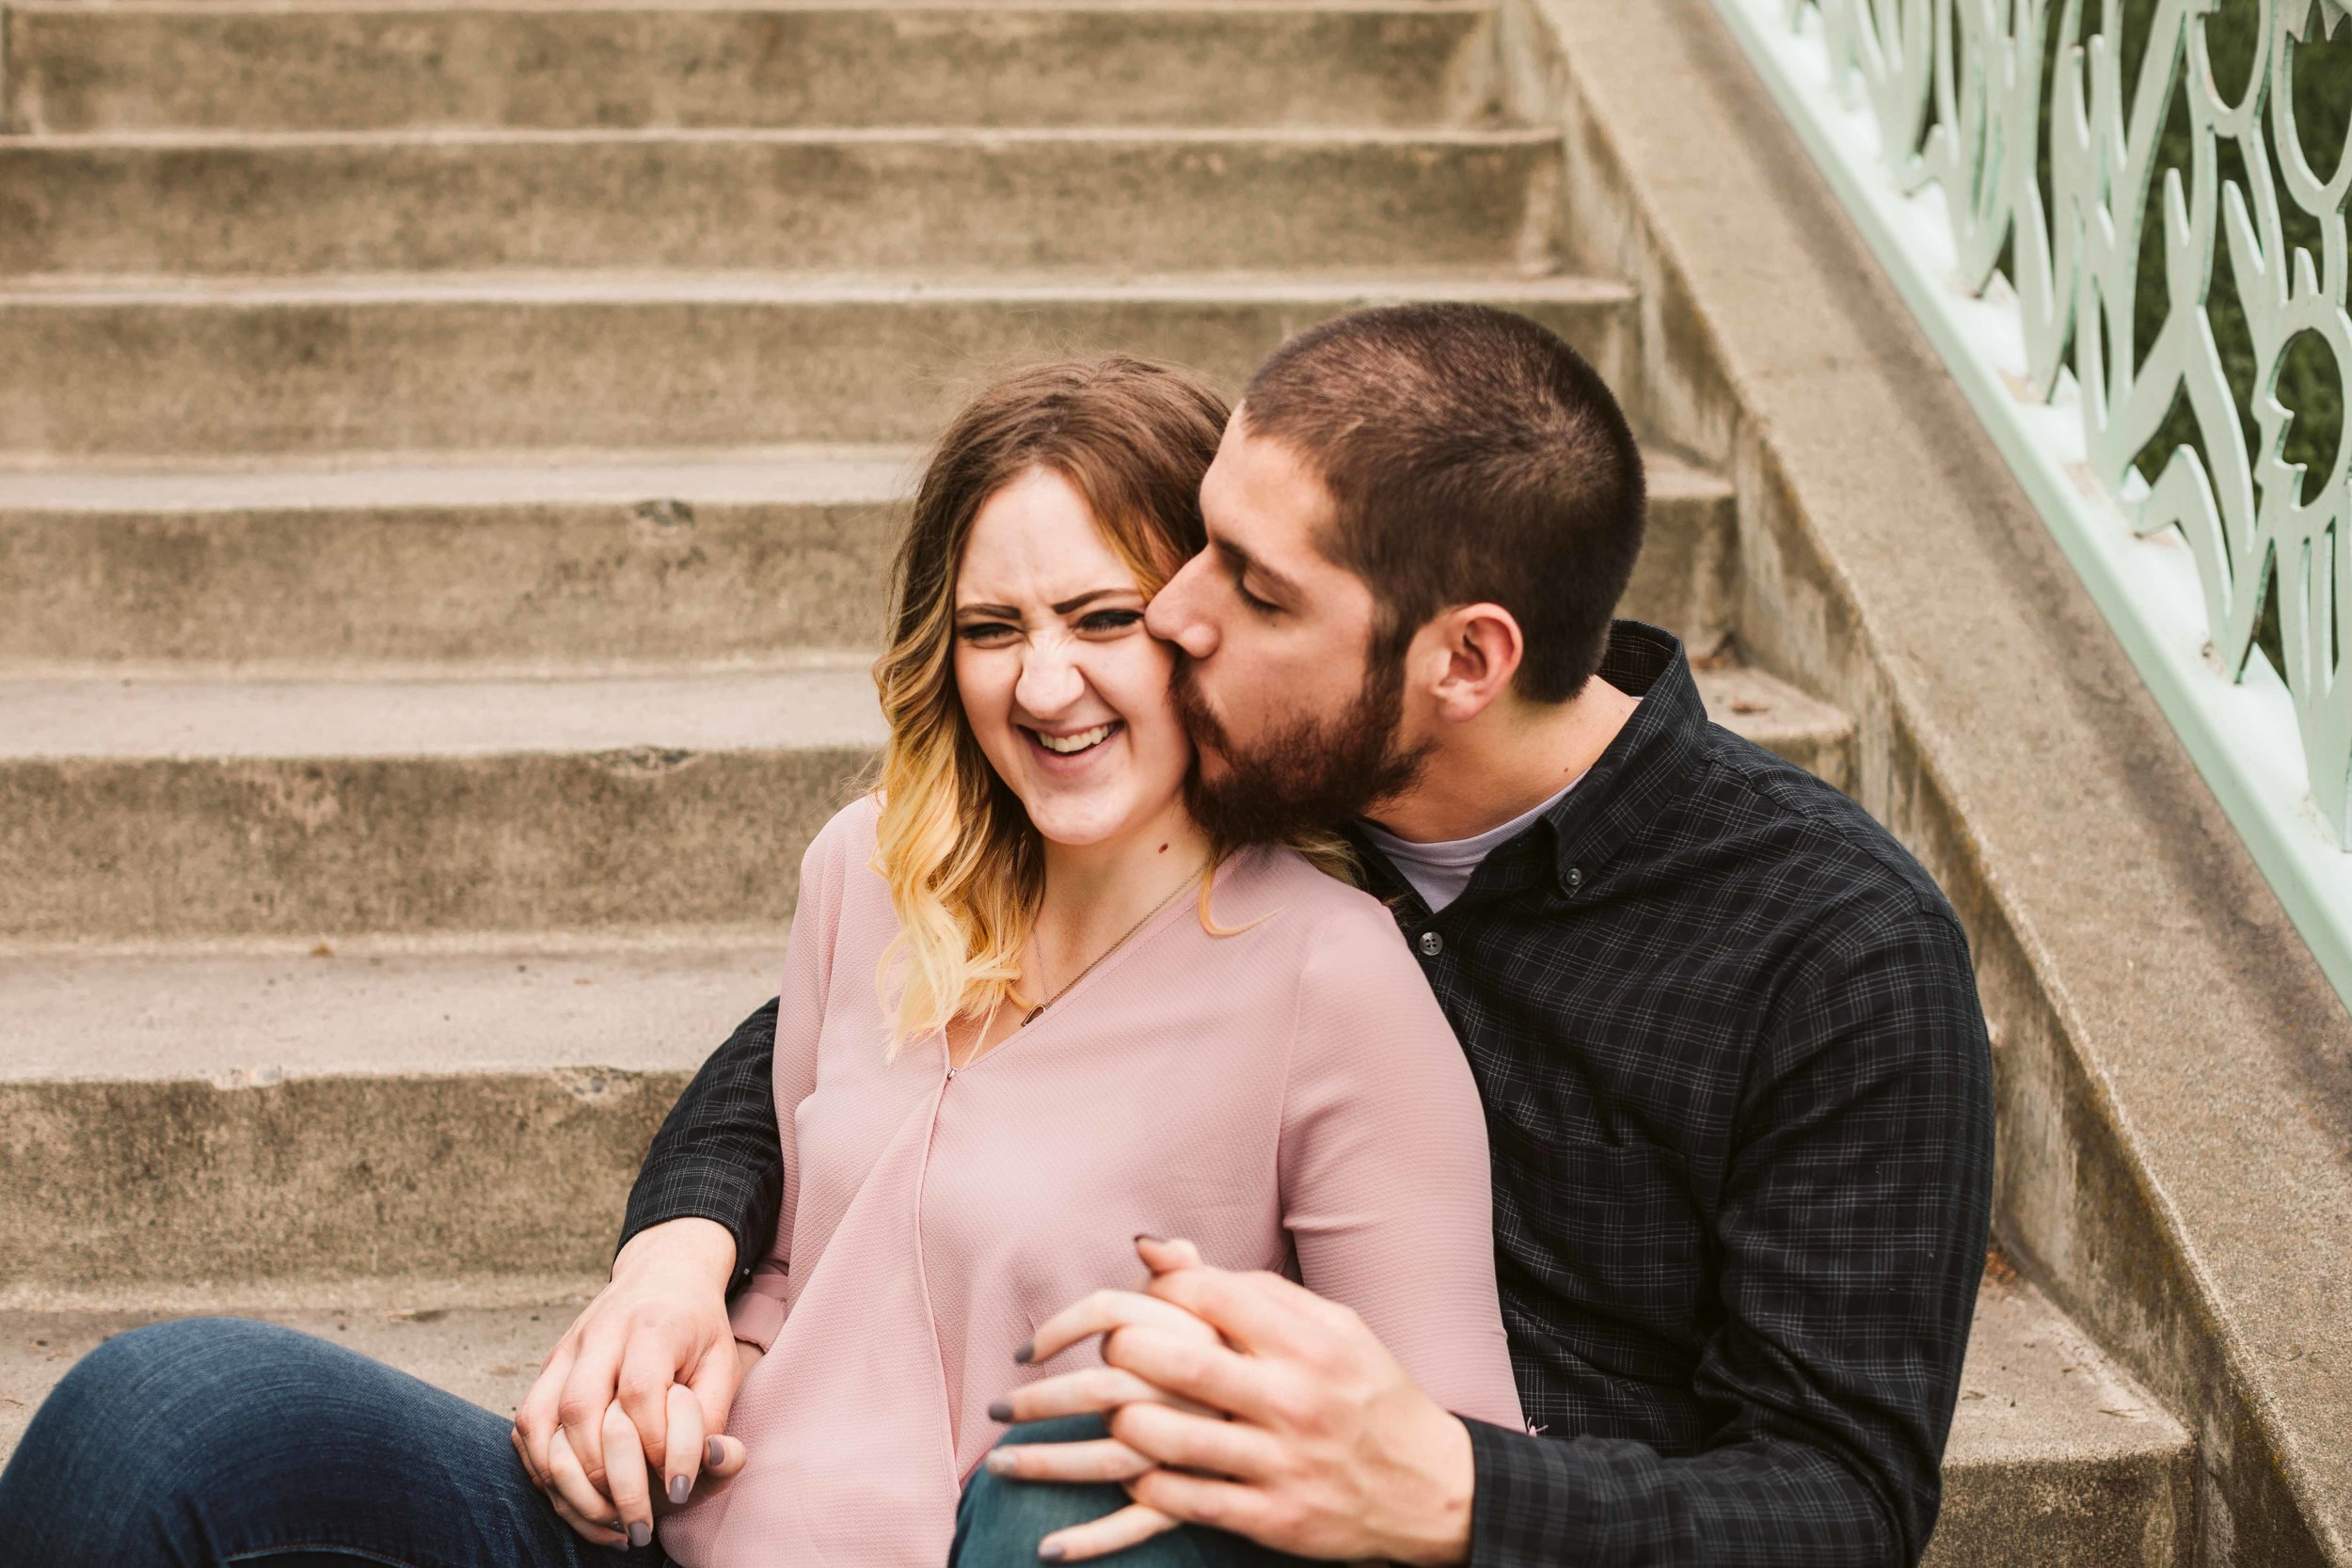 Manitoe Park Engagement Photos